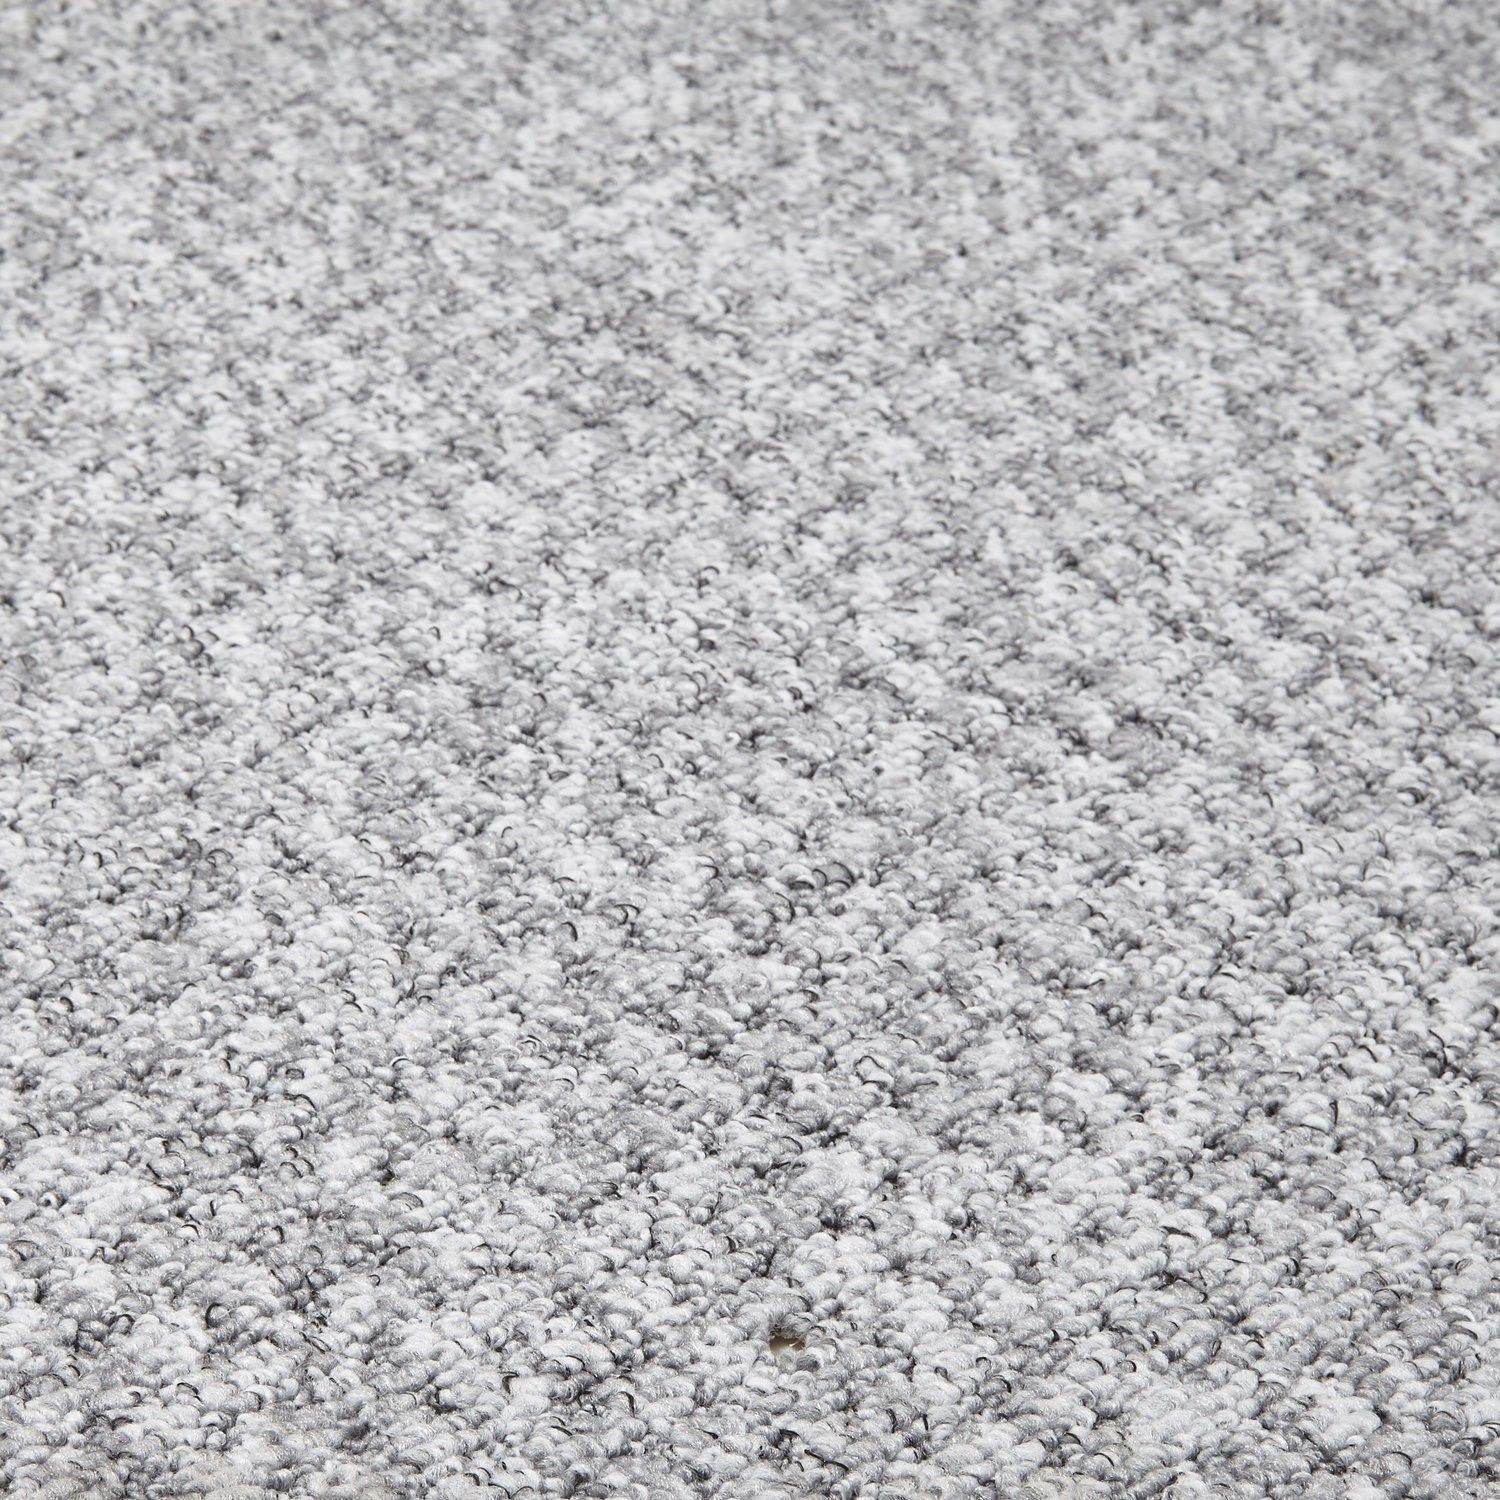 Tangier Berber Textured Carpet Carpetright Carpet In